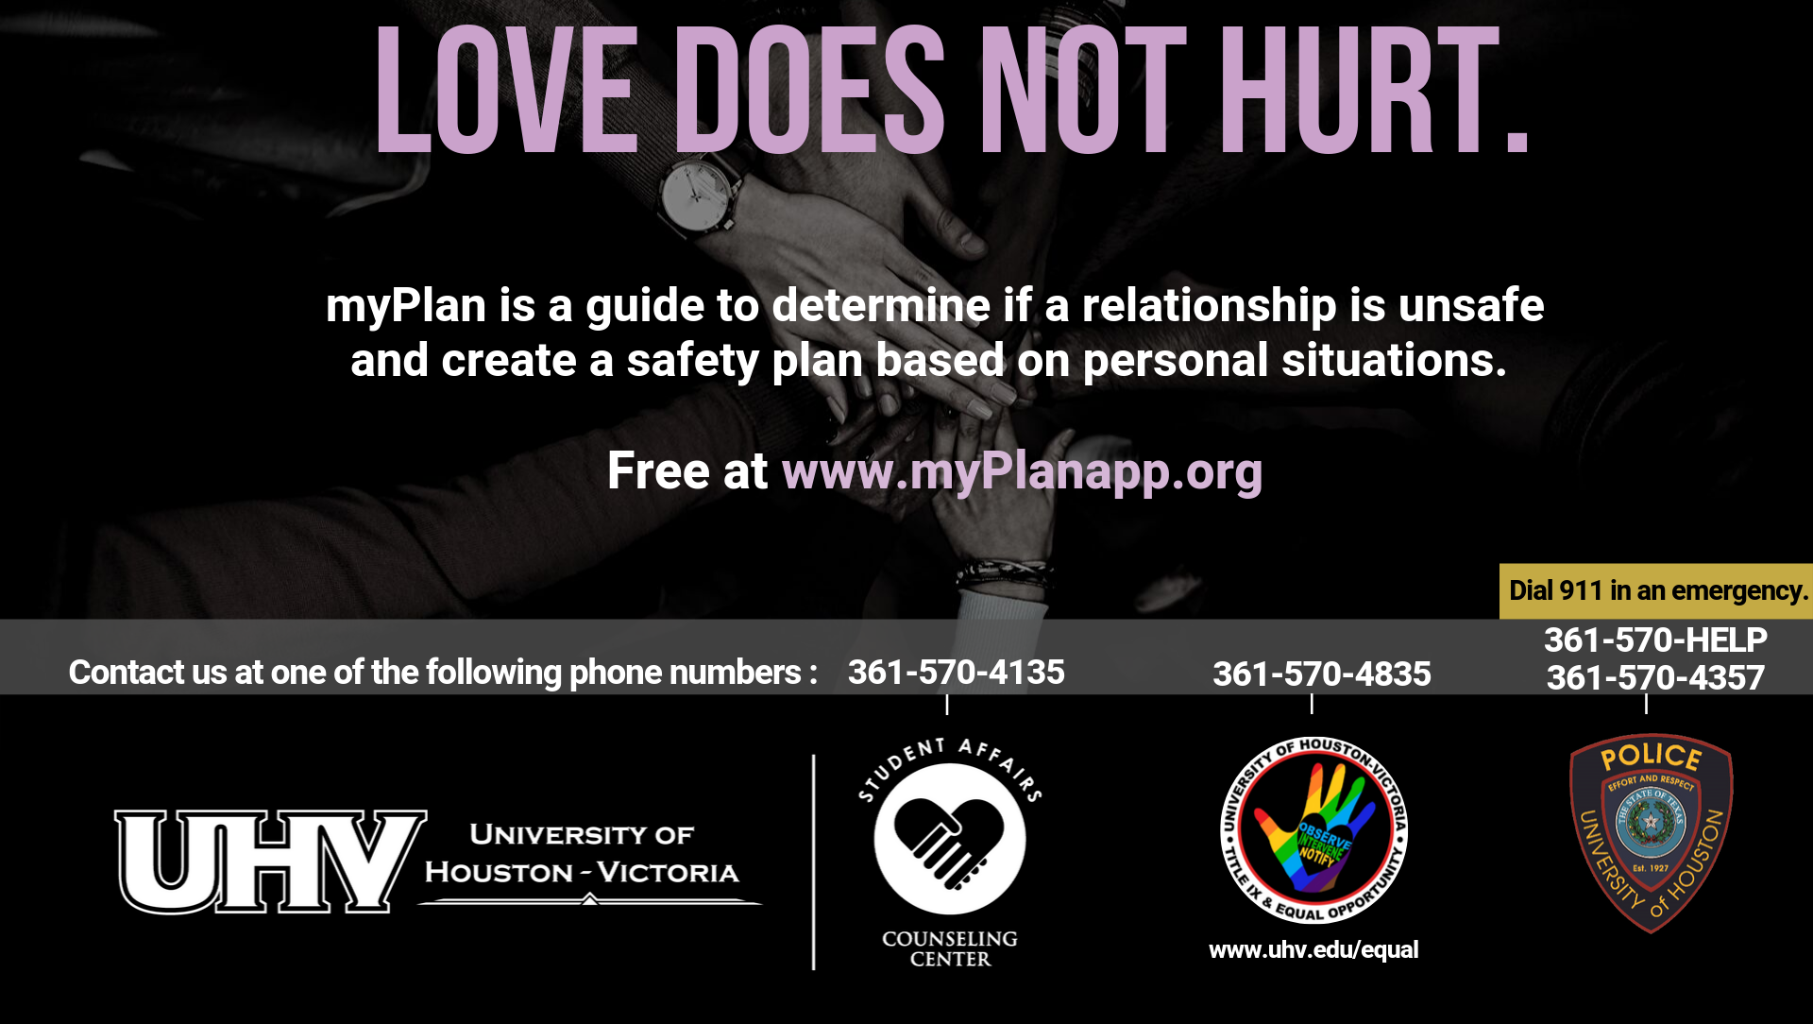 Love does not hurt. myPlan is a guide to determine if a relationship is unsafe and create a safety plan based on personal situations. Free at www.myPlanapp.org. University of Houston-Victoria Title IX and Equal Opportunity Logo (rainbow hand with heart insert with words Observe, Intervene, Notify).